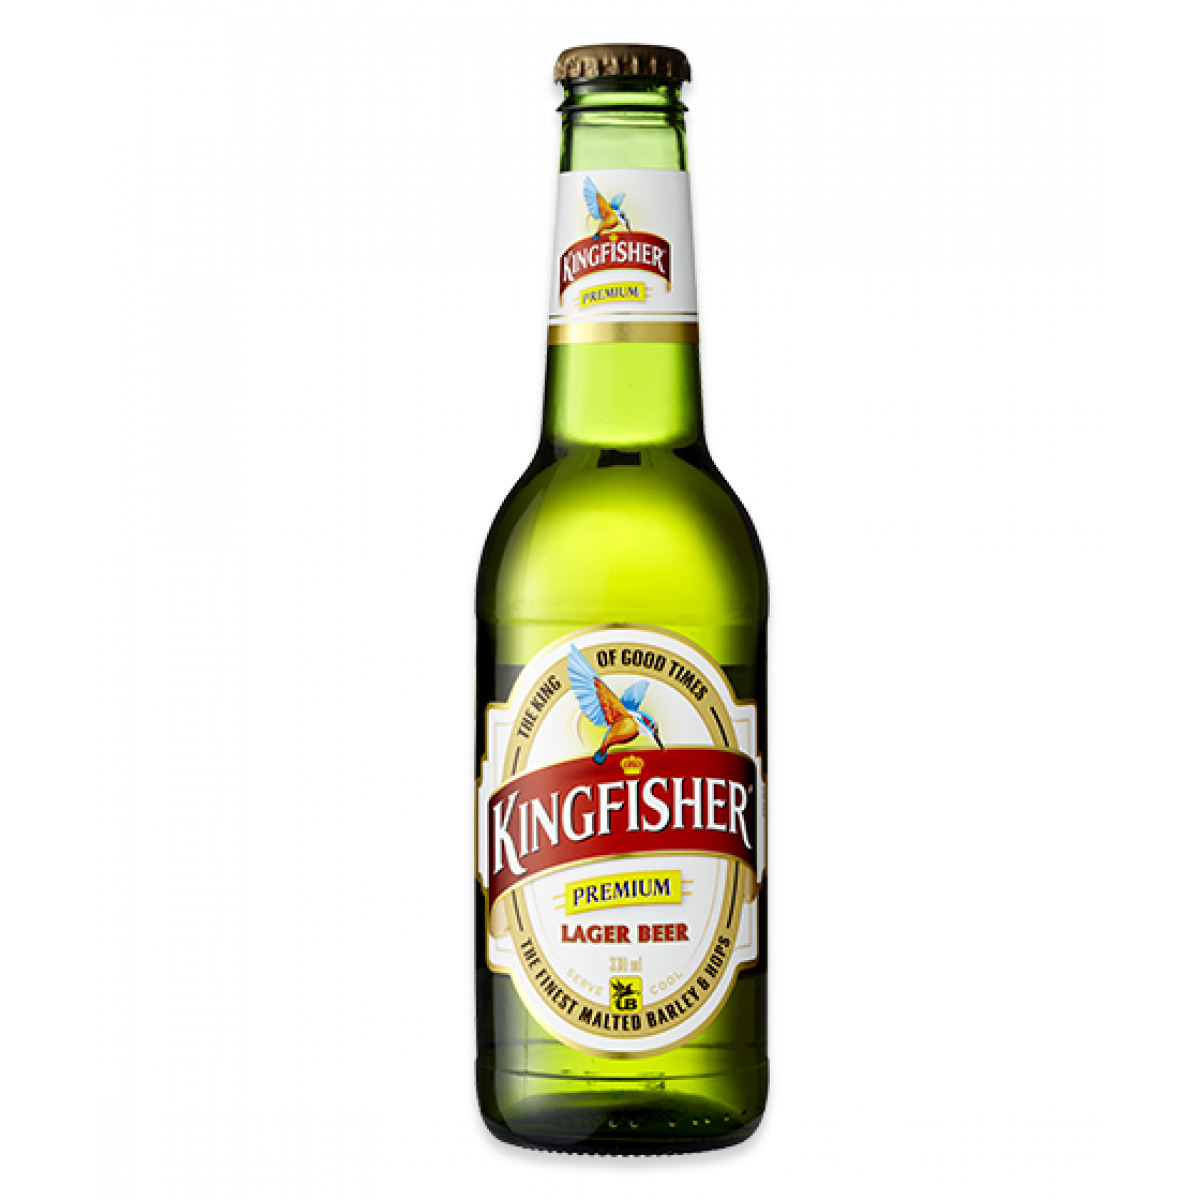 Kingfisher 330ml - Beer Bottle PNG HD